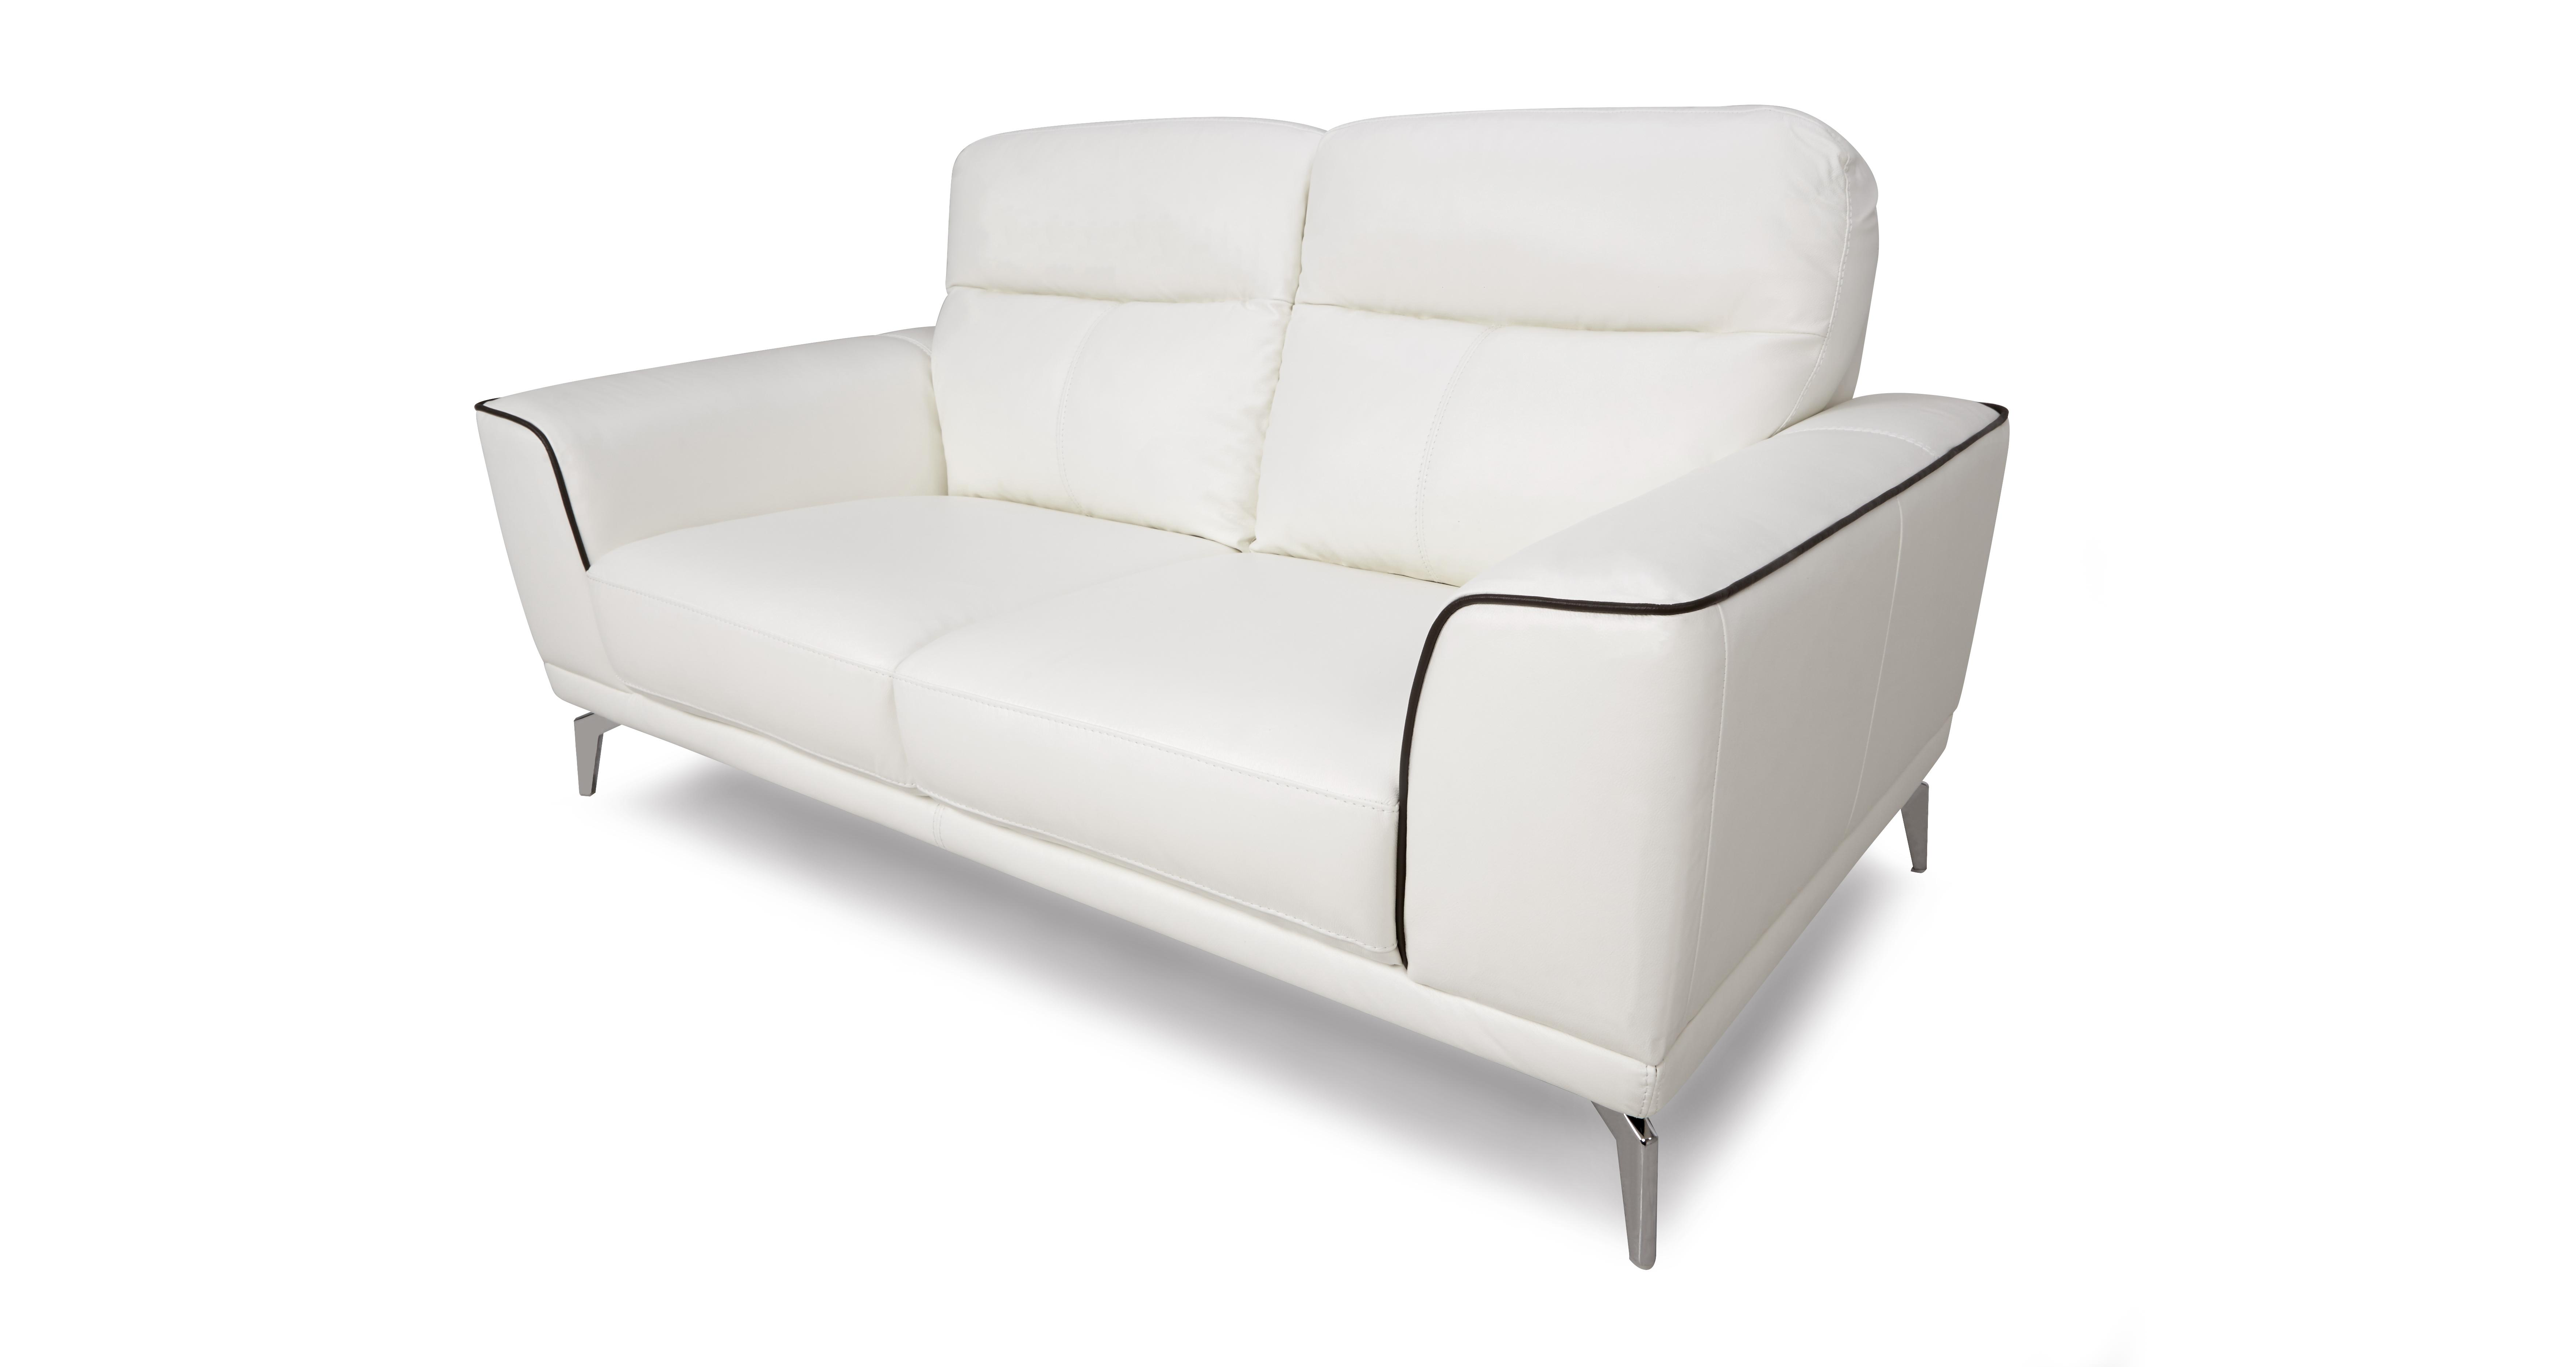 2 seater leather sofas at dfs 3 piece microfiber sectional sofa denver snow white ebay